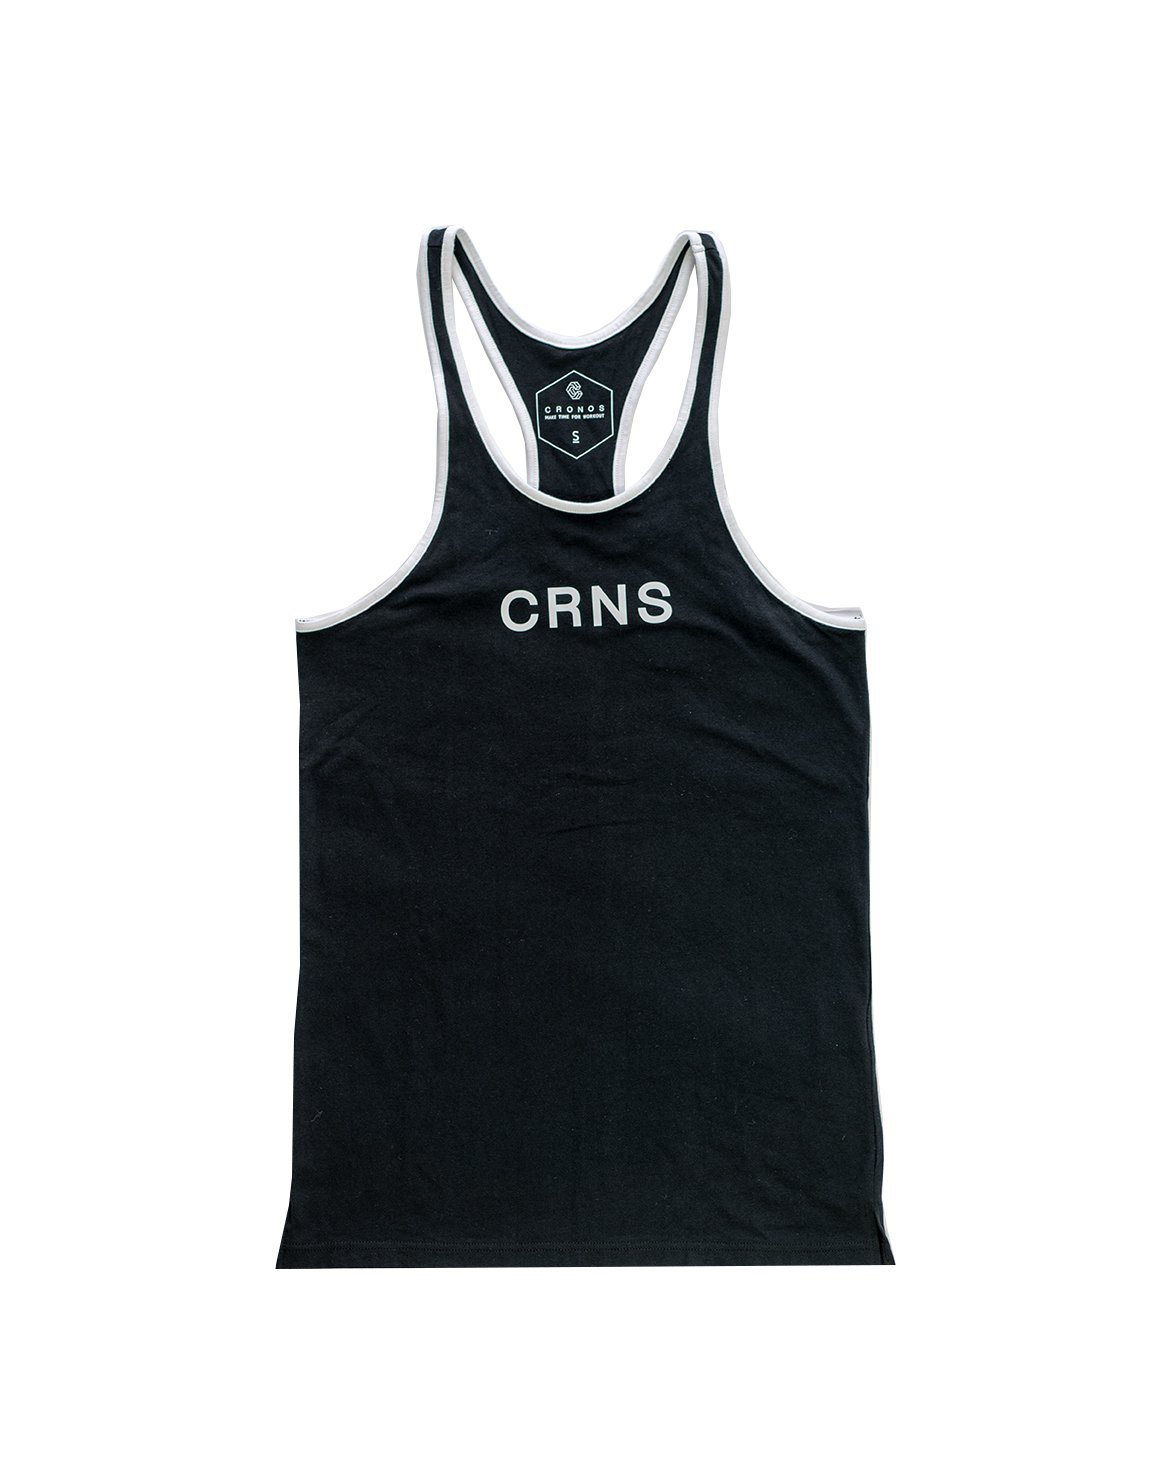 <img class='new_mark_img1' src='https://img.shop-pro.jp/img/new/icons1.gif' style='border:none;display:inline;margin:0px;padding:0px;width:auto;' />CRNS PIPING TANK TOP BLACK